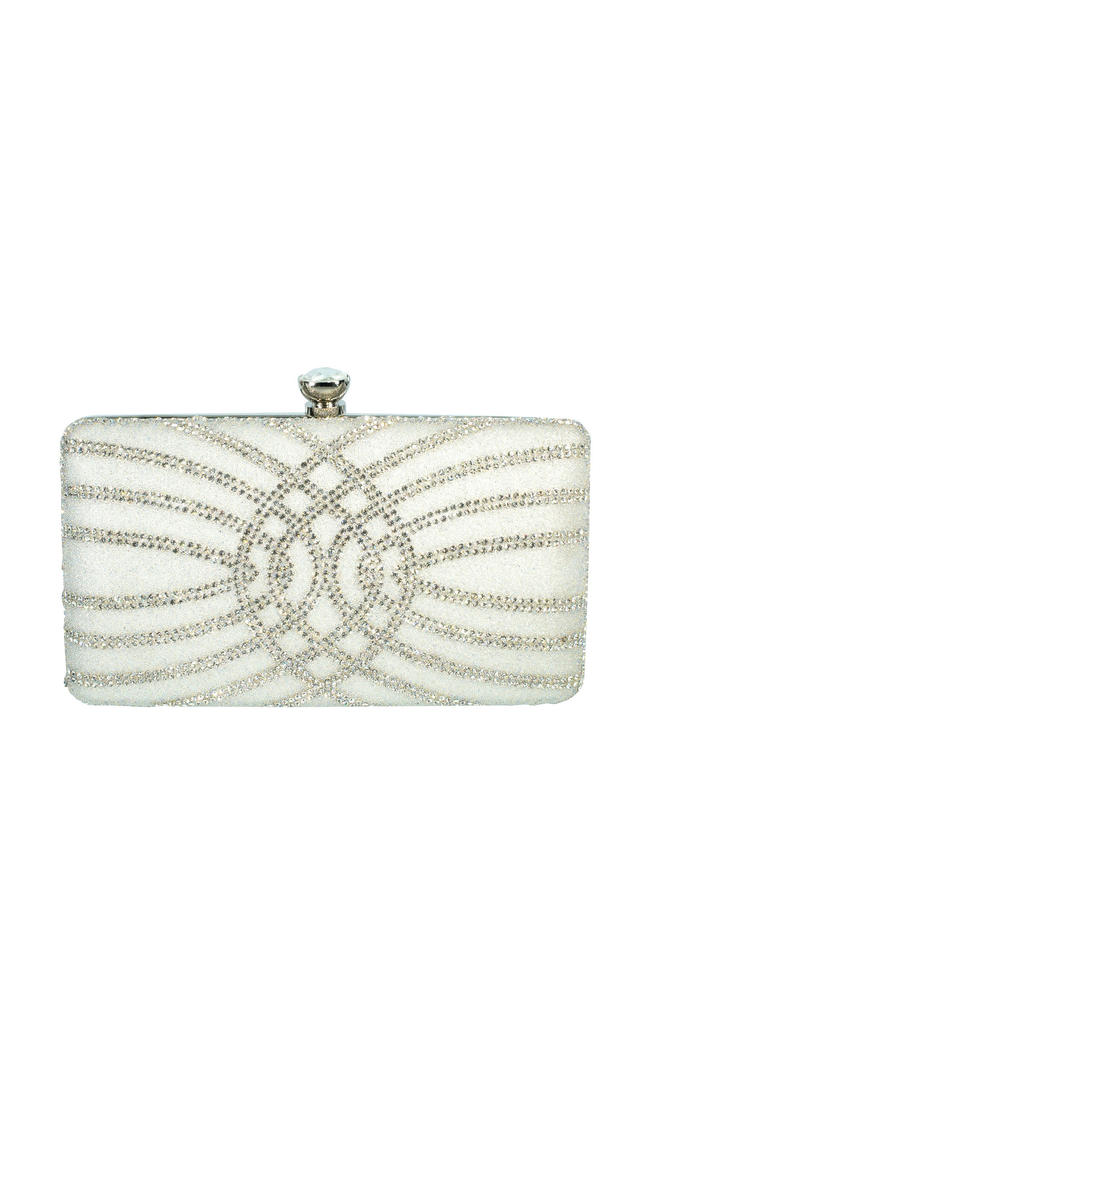 Embellished Metal Frame Clutch